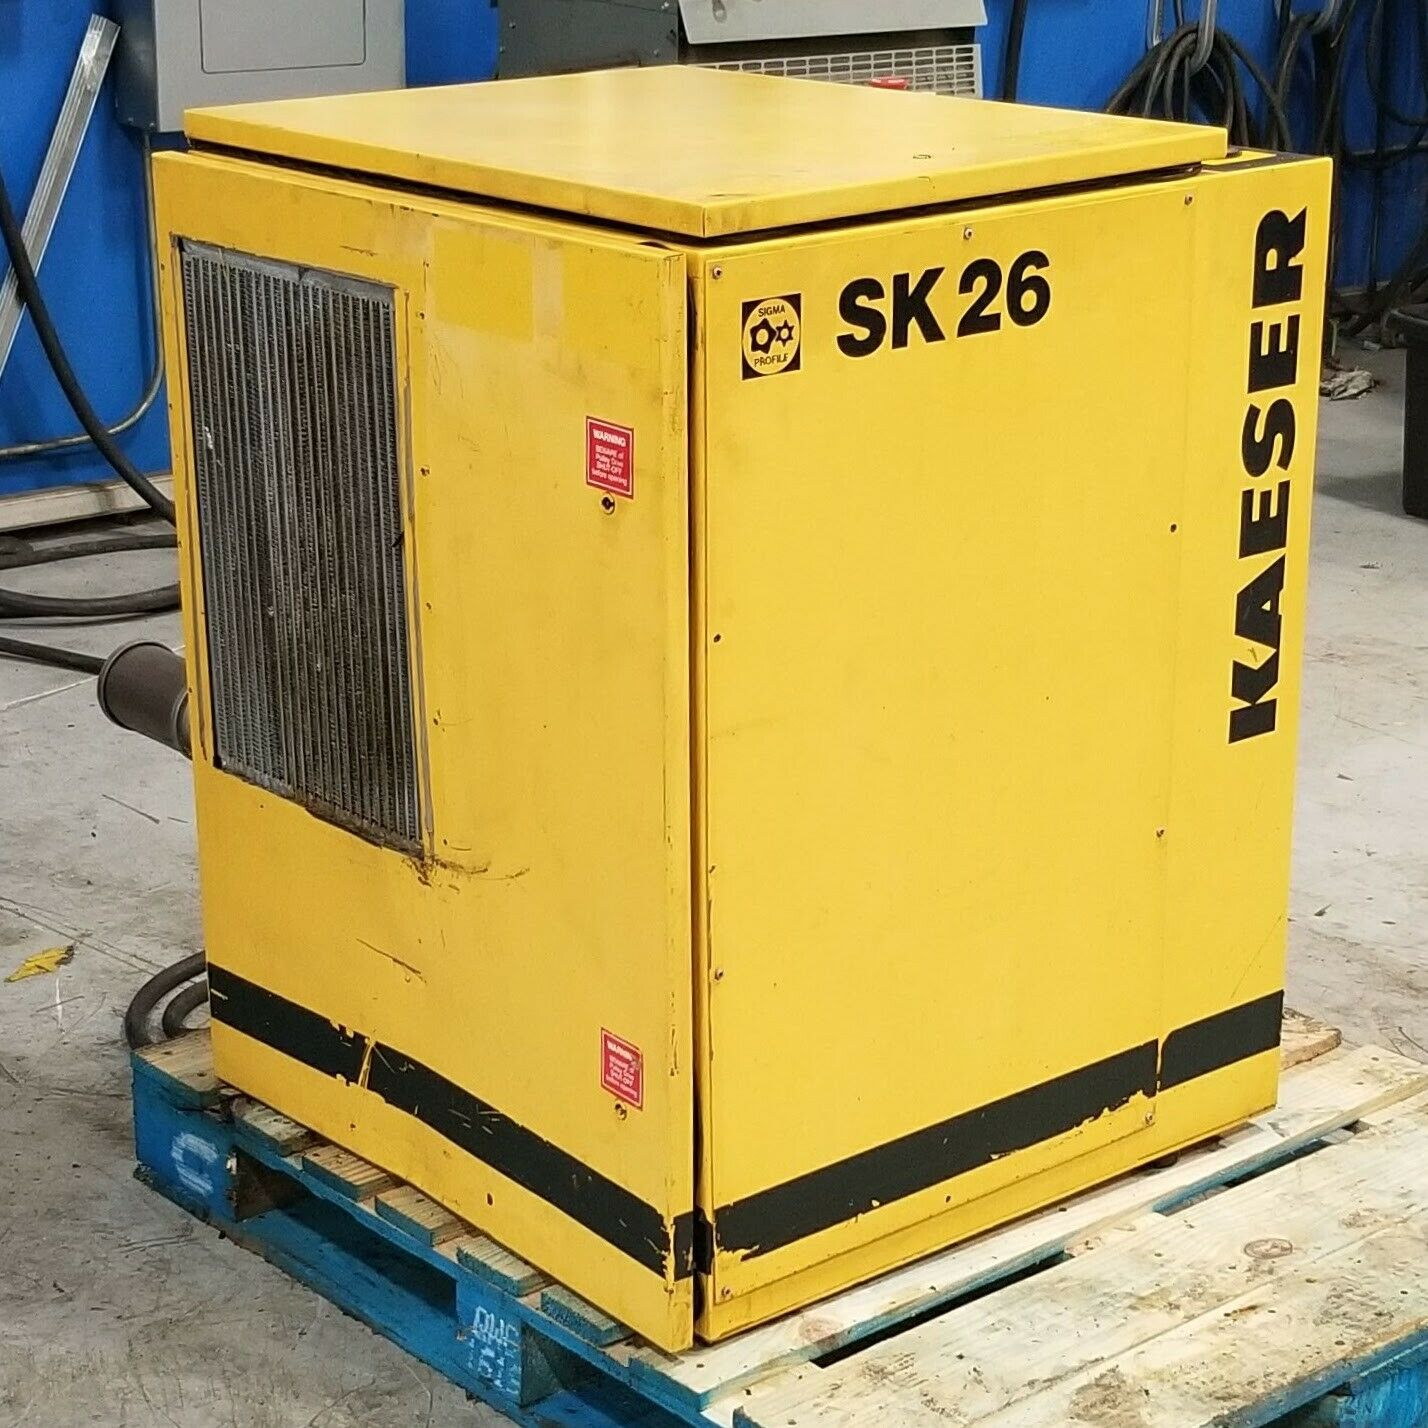 20 Hp Air Compressor in 2020 Air compressor, Compressor, Air